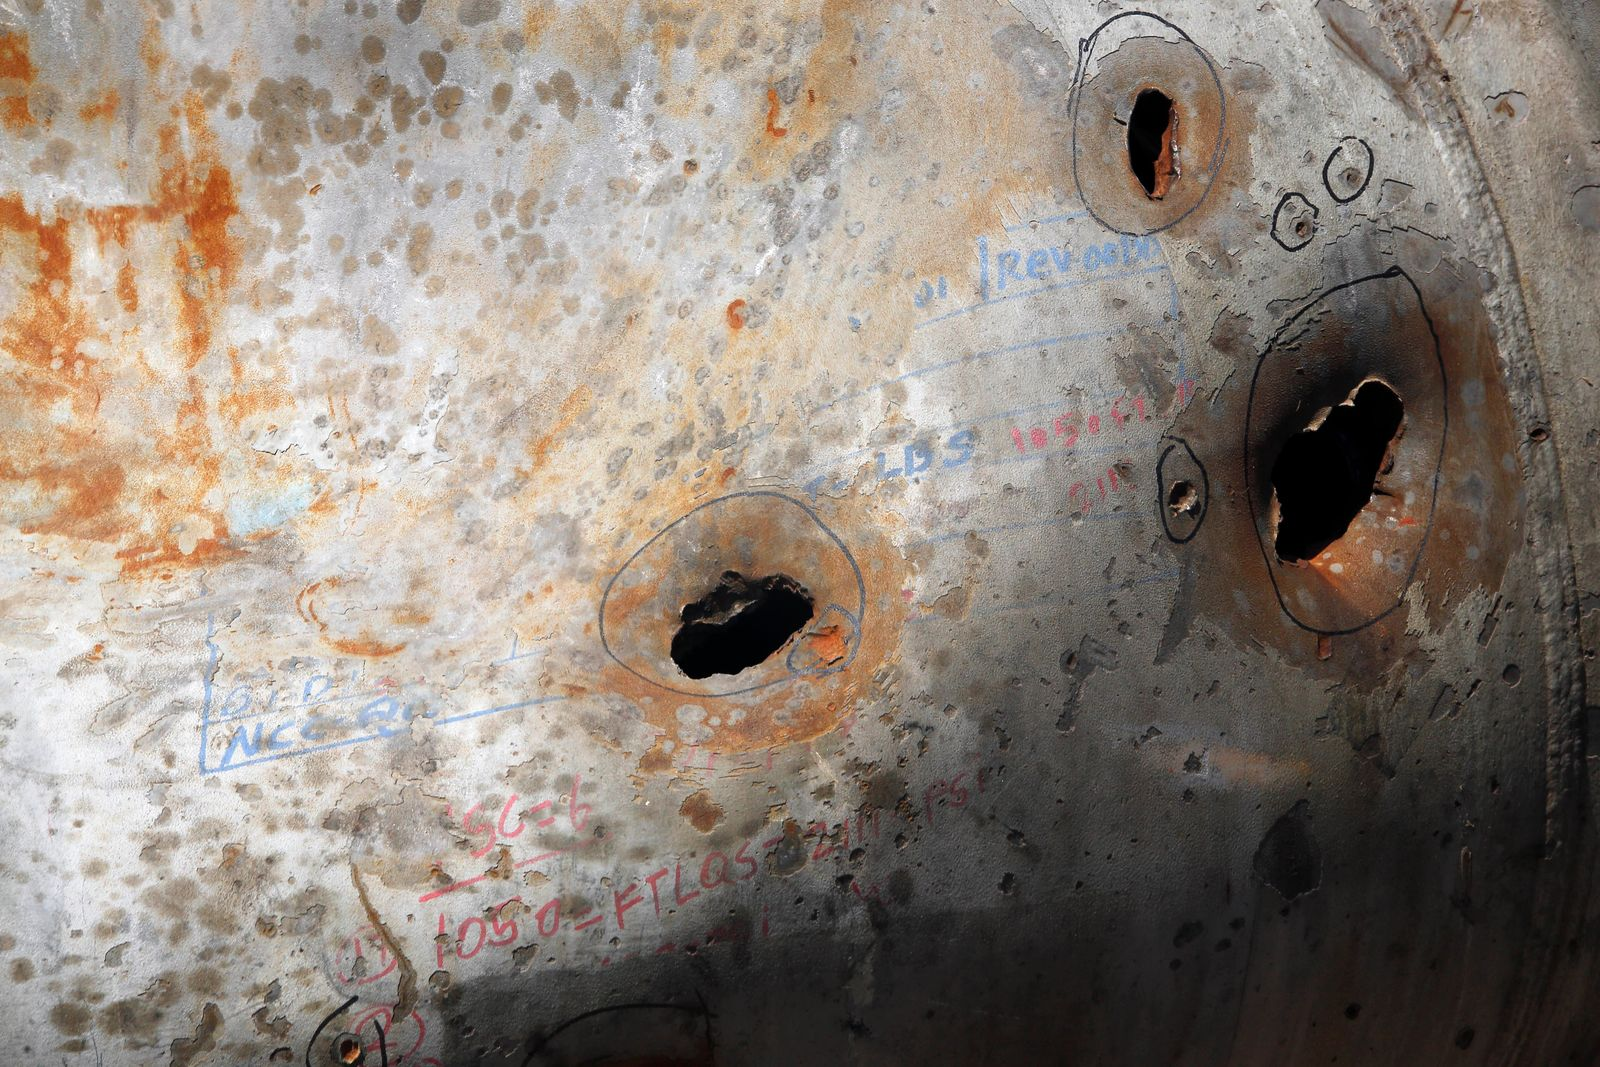 In this photo opportunity during a trip organized by Saudi information ministry, holes caused by fragments of a missile are seen in a damaged pipe in the Aramco's Khurais oil field, Saudi Arabia, Friday, Sept. 20, 2019, after it was hit during Sept. 14 attack. (AP Photo/Amr Nabil)